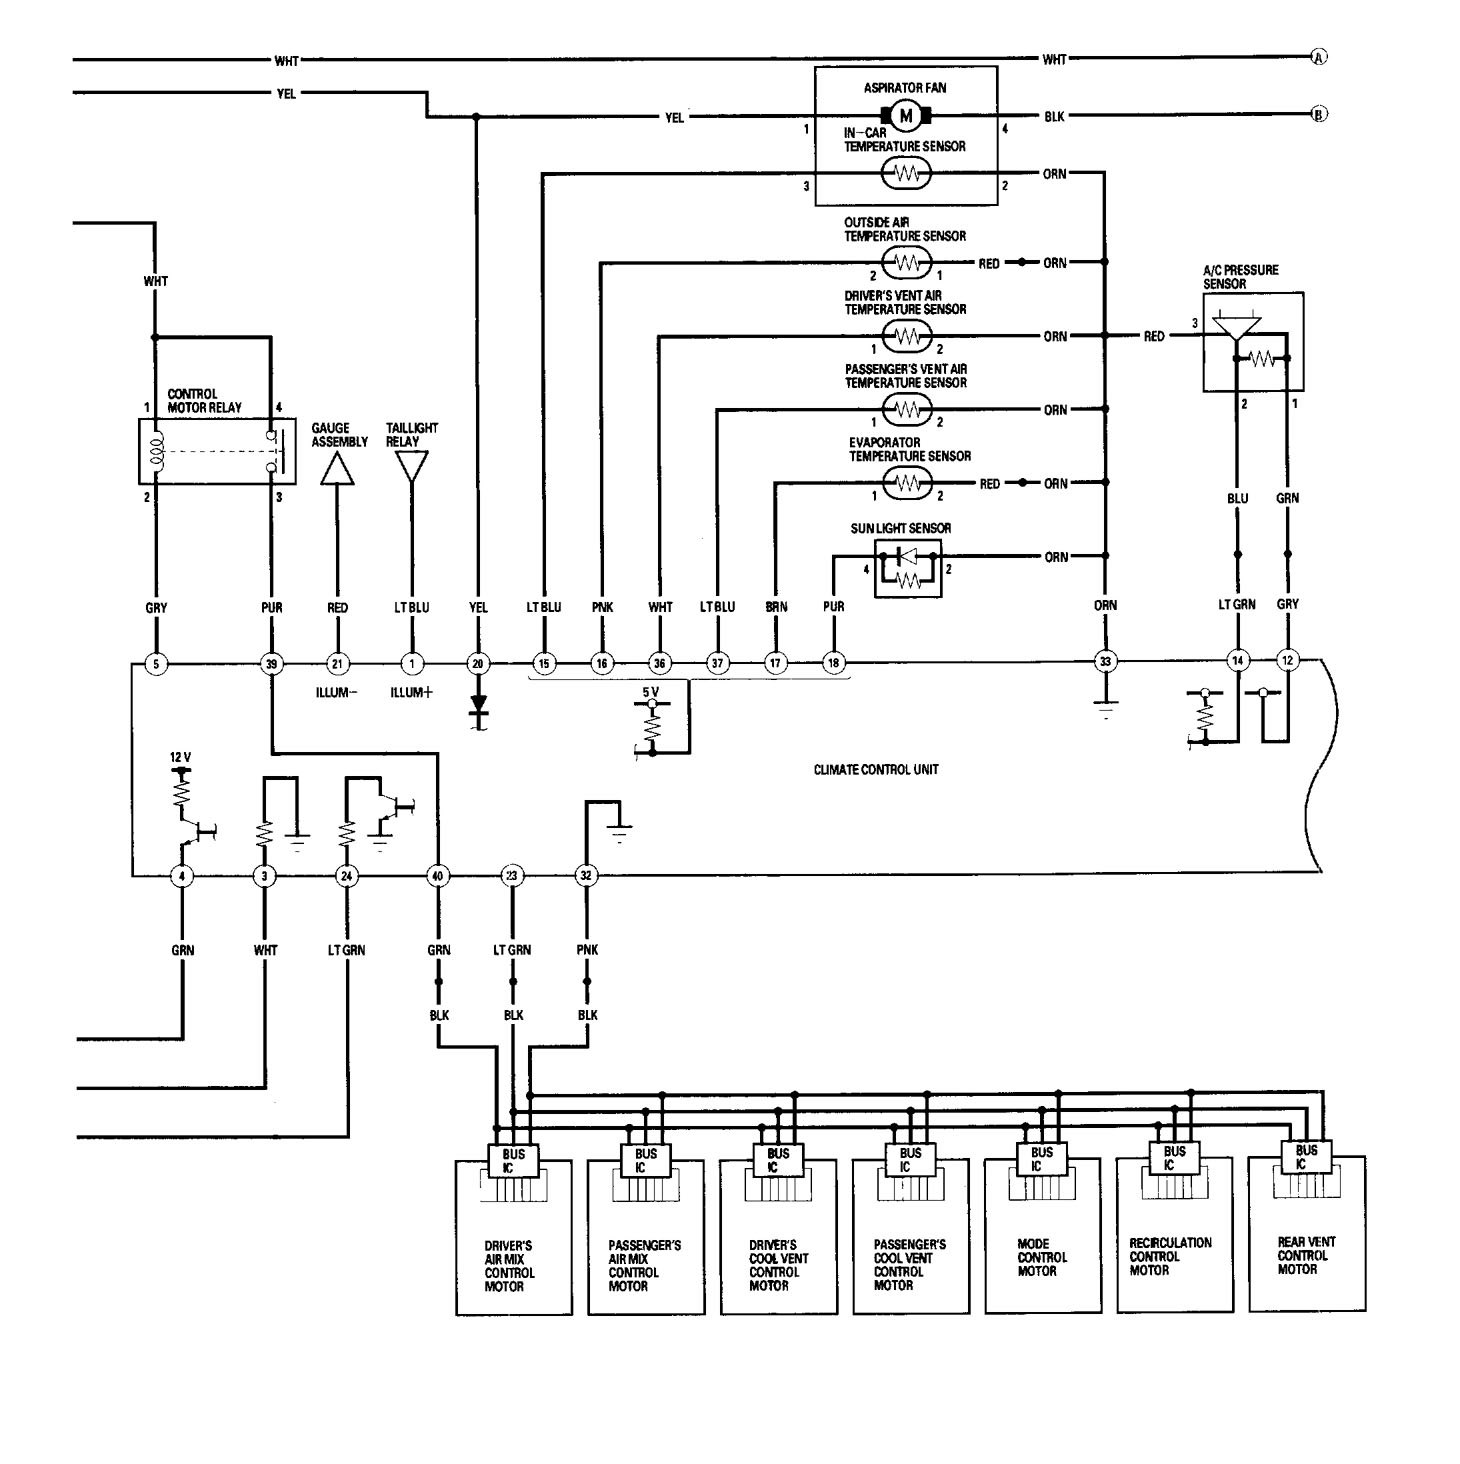 wiring diagrams for hvac auto electrical wiring diagramacura rl 2006 wiring diagrams